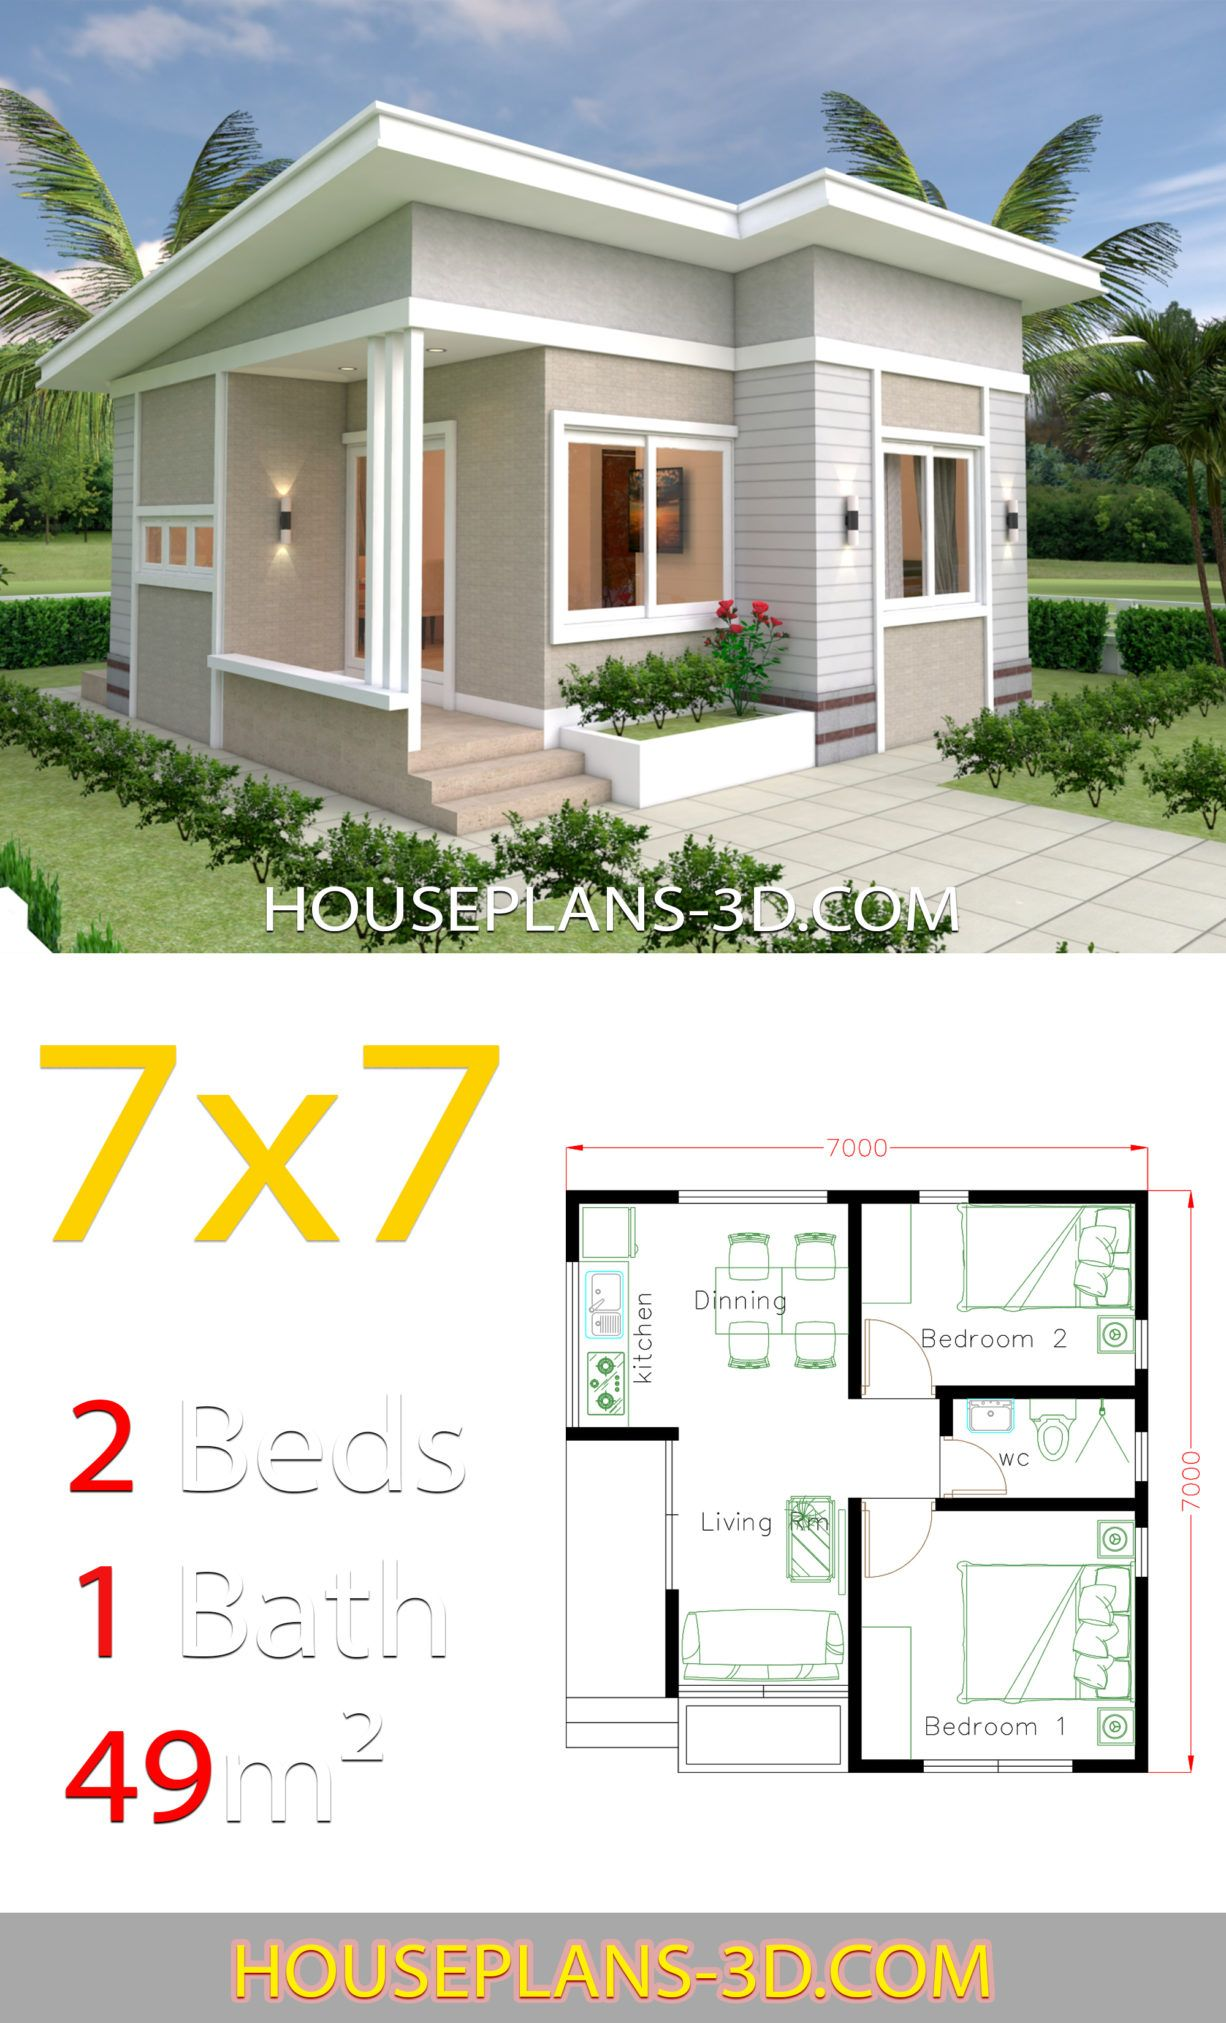 Small House Design Plans 7x7 With 2 Bedrooms House Plans 3d In 2020 Small House Design Plans House Plans Small House Layout